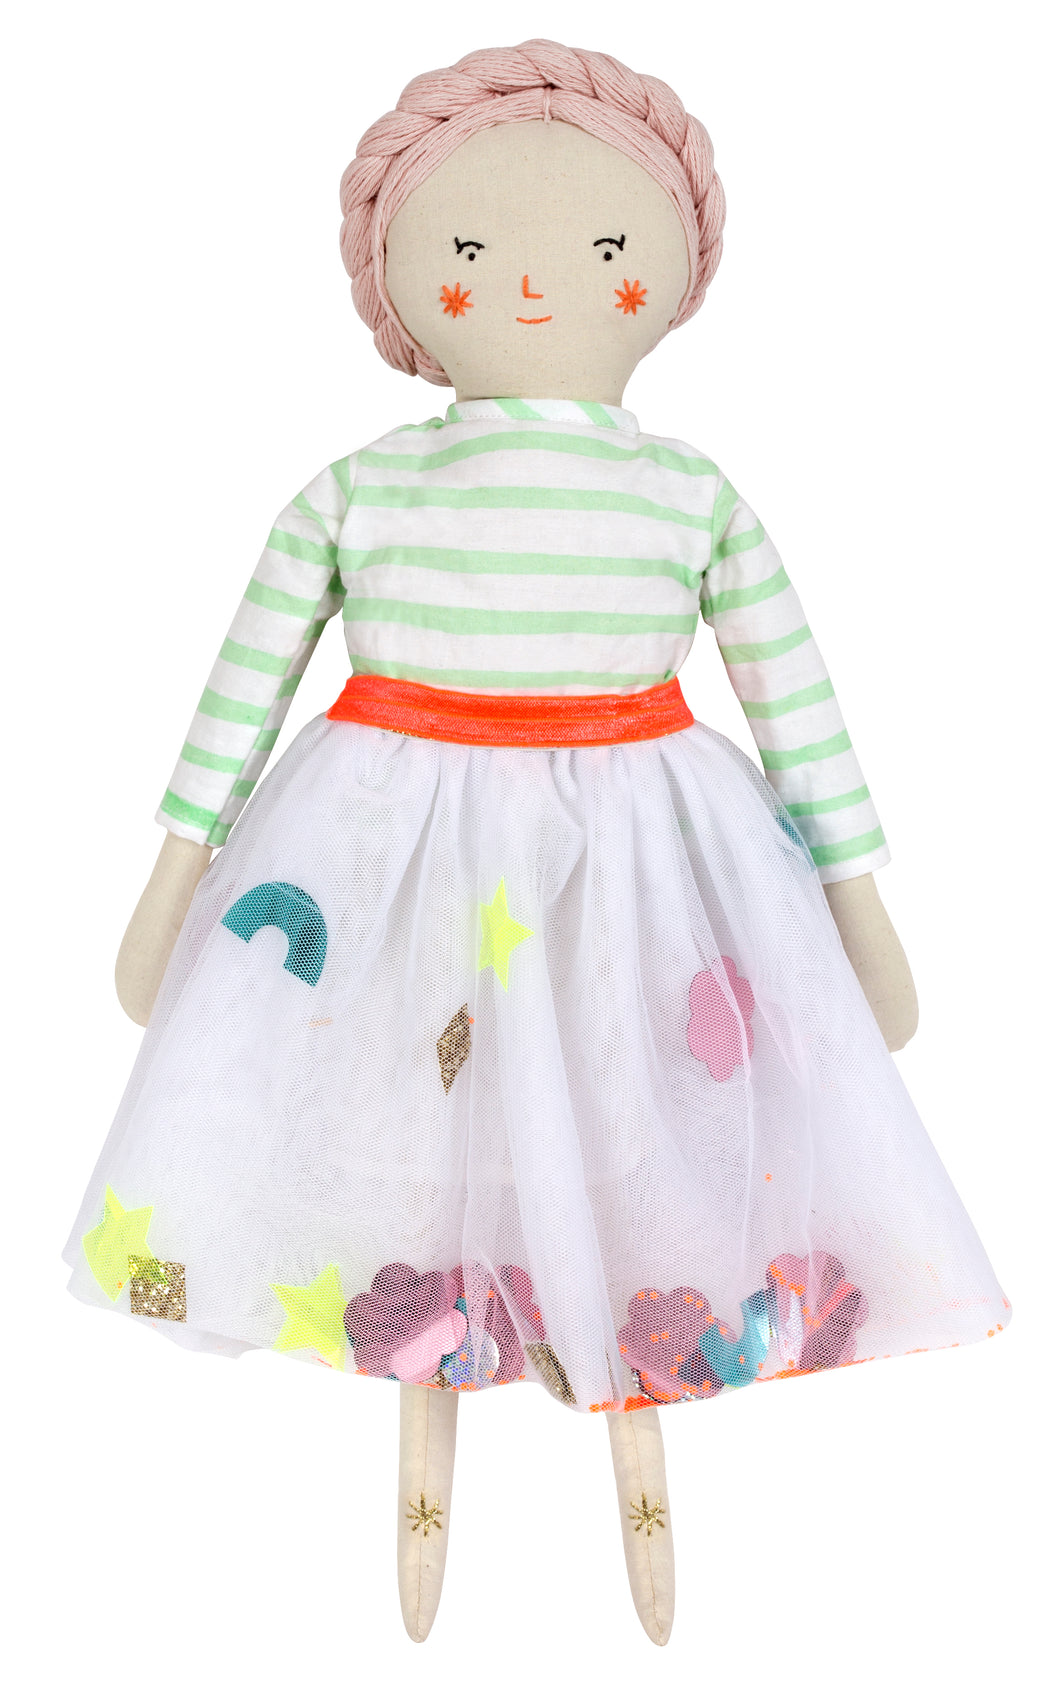 Meet Matilda! Dressed in green stripe shirt & white sequin skirt. Stitched features with pink yarn and gold thread detail.  She likes swimming in the sea, making soap bubbles and walking barefoot in the grass. Her besties are Ruby and Lila!  size 19